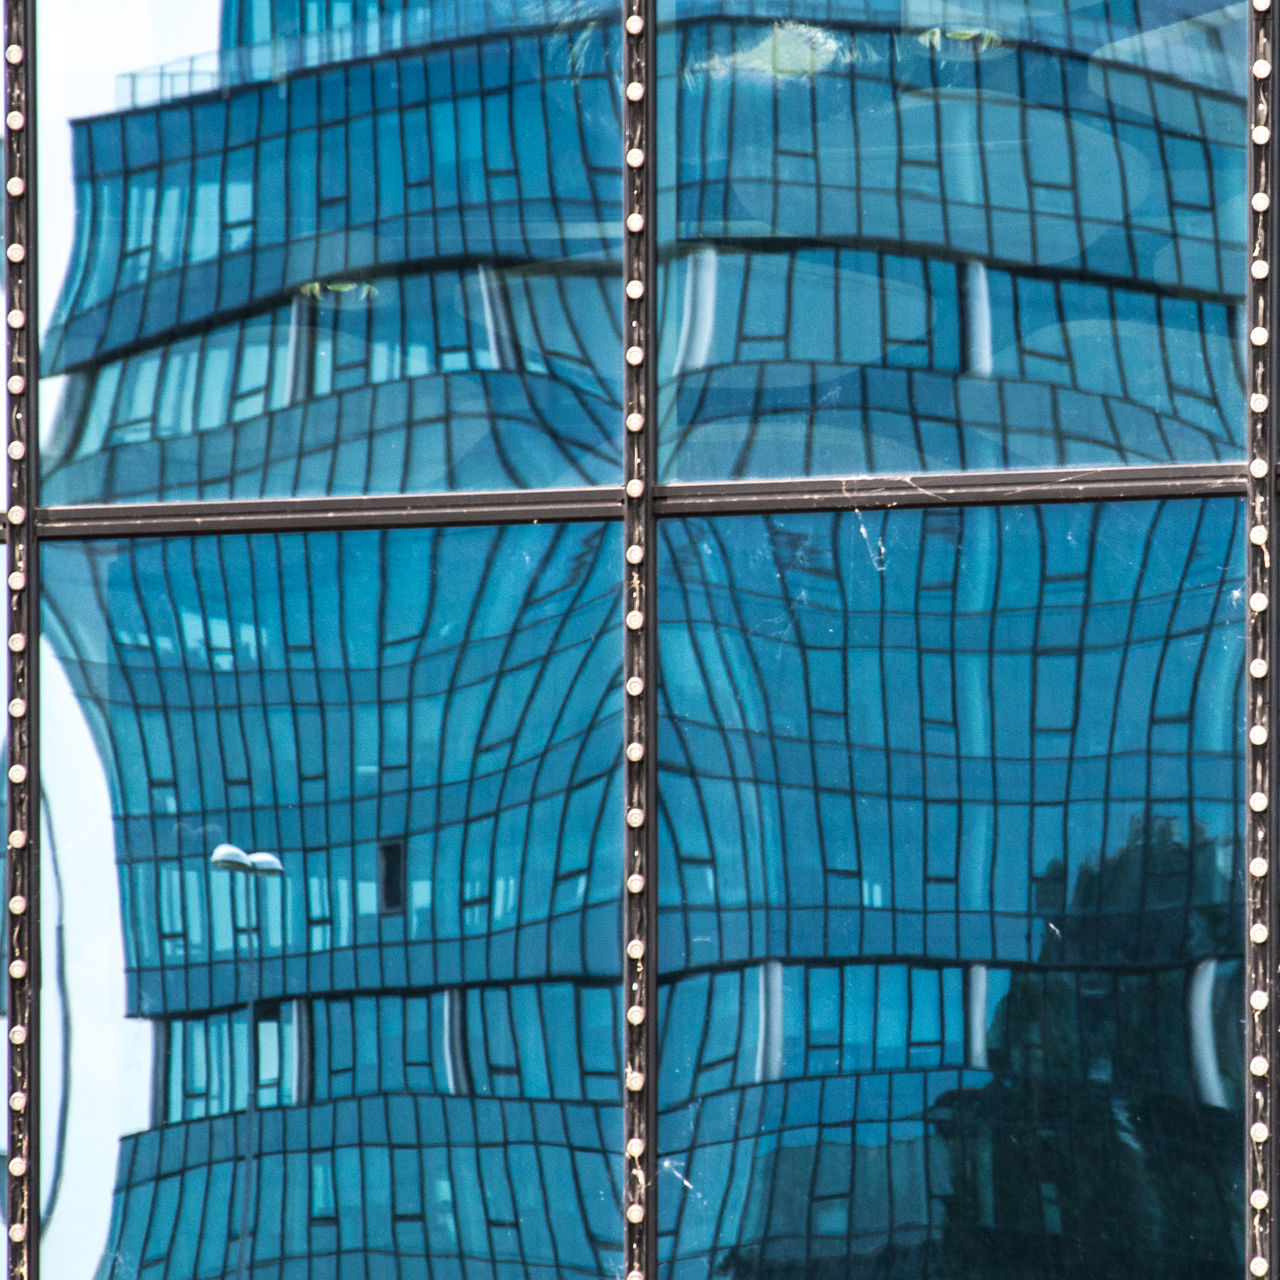 Gent Belgium - Blue Towers glass facade distortion Architectural Feature Architecture Backgrounds Blue Building Built Structure City City Life Day Distortion Gent Belgium Geometric Shape Glass - Material Glass Facades Low Angle View Modern No People Fine Art Photography Outdoors Reflection Sky Skyscraper Tall - High Urban Geometry Premium Collection